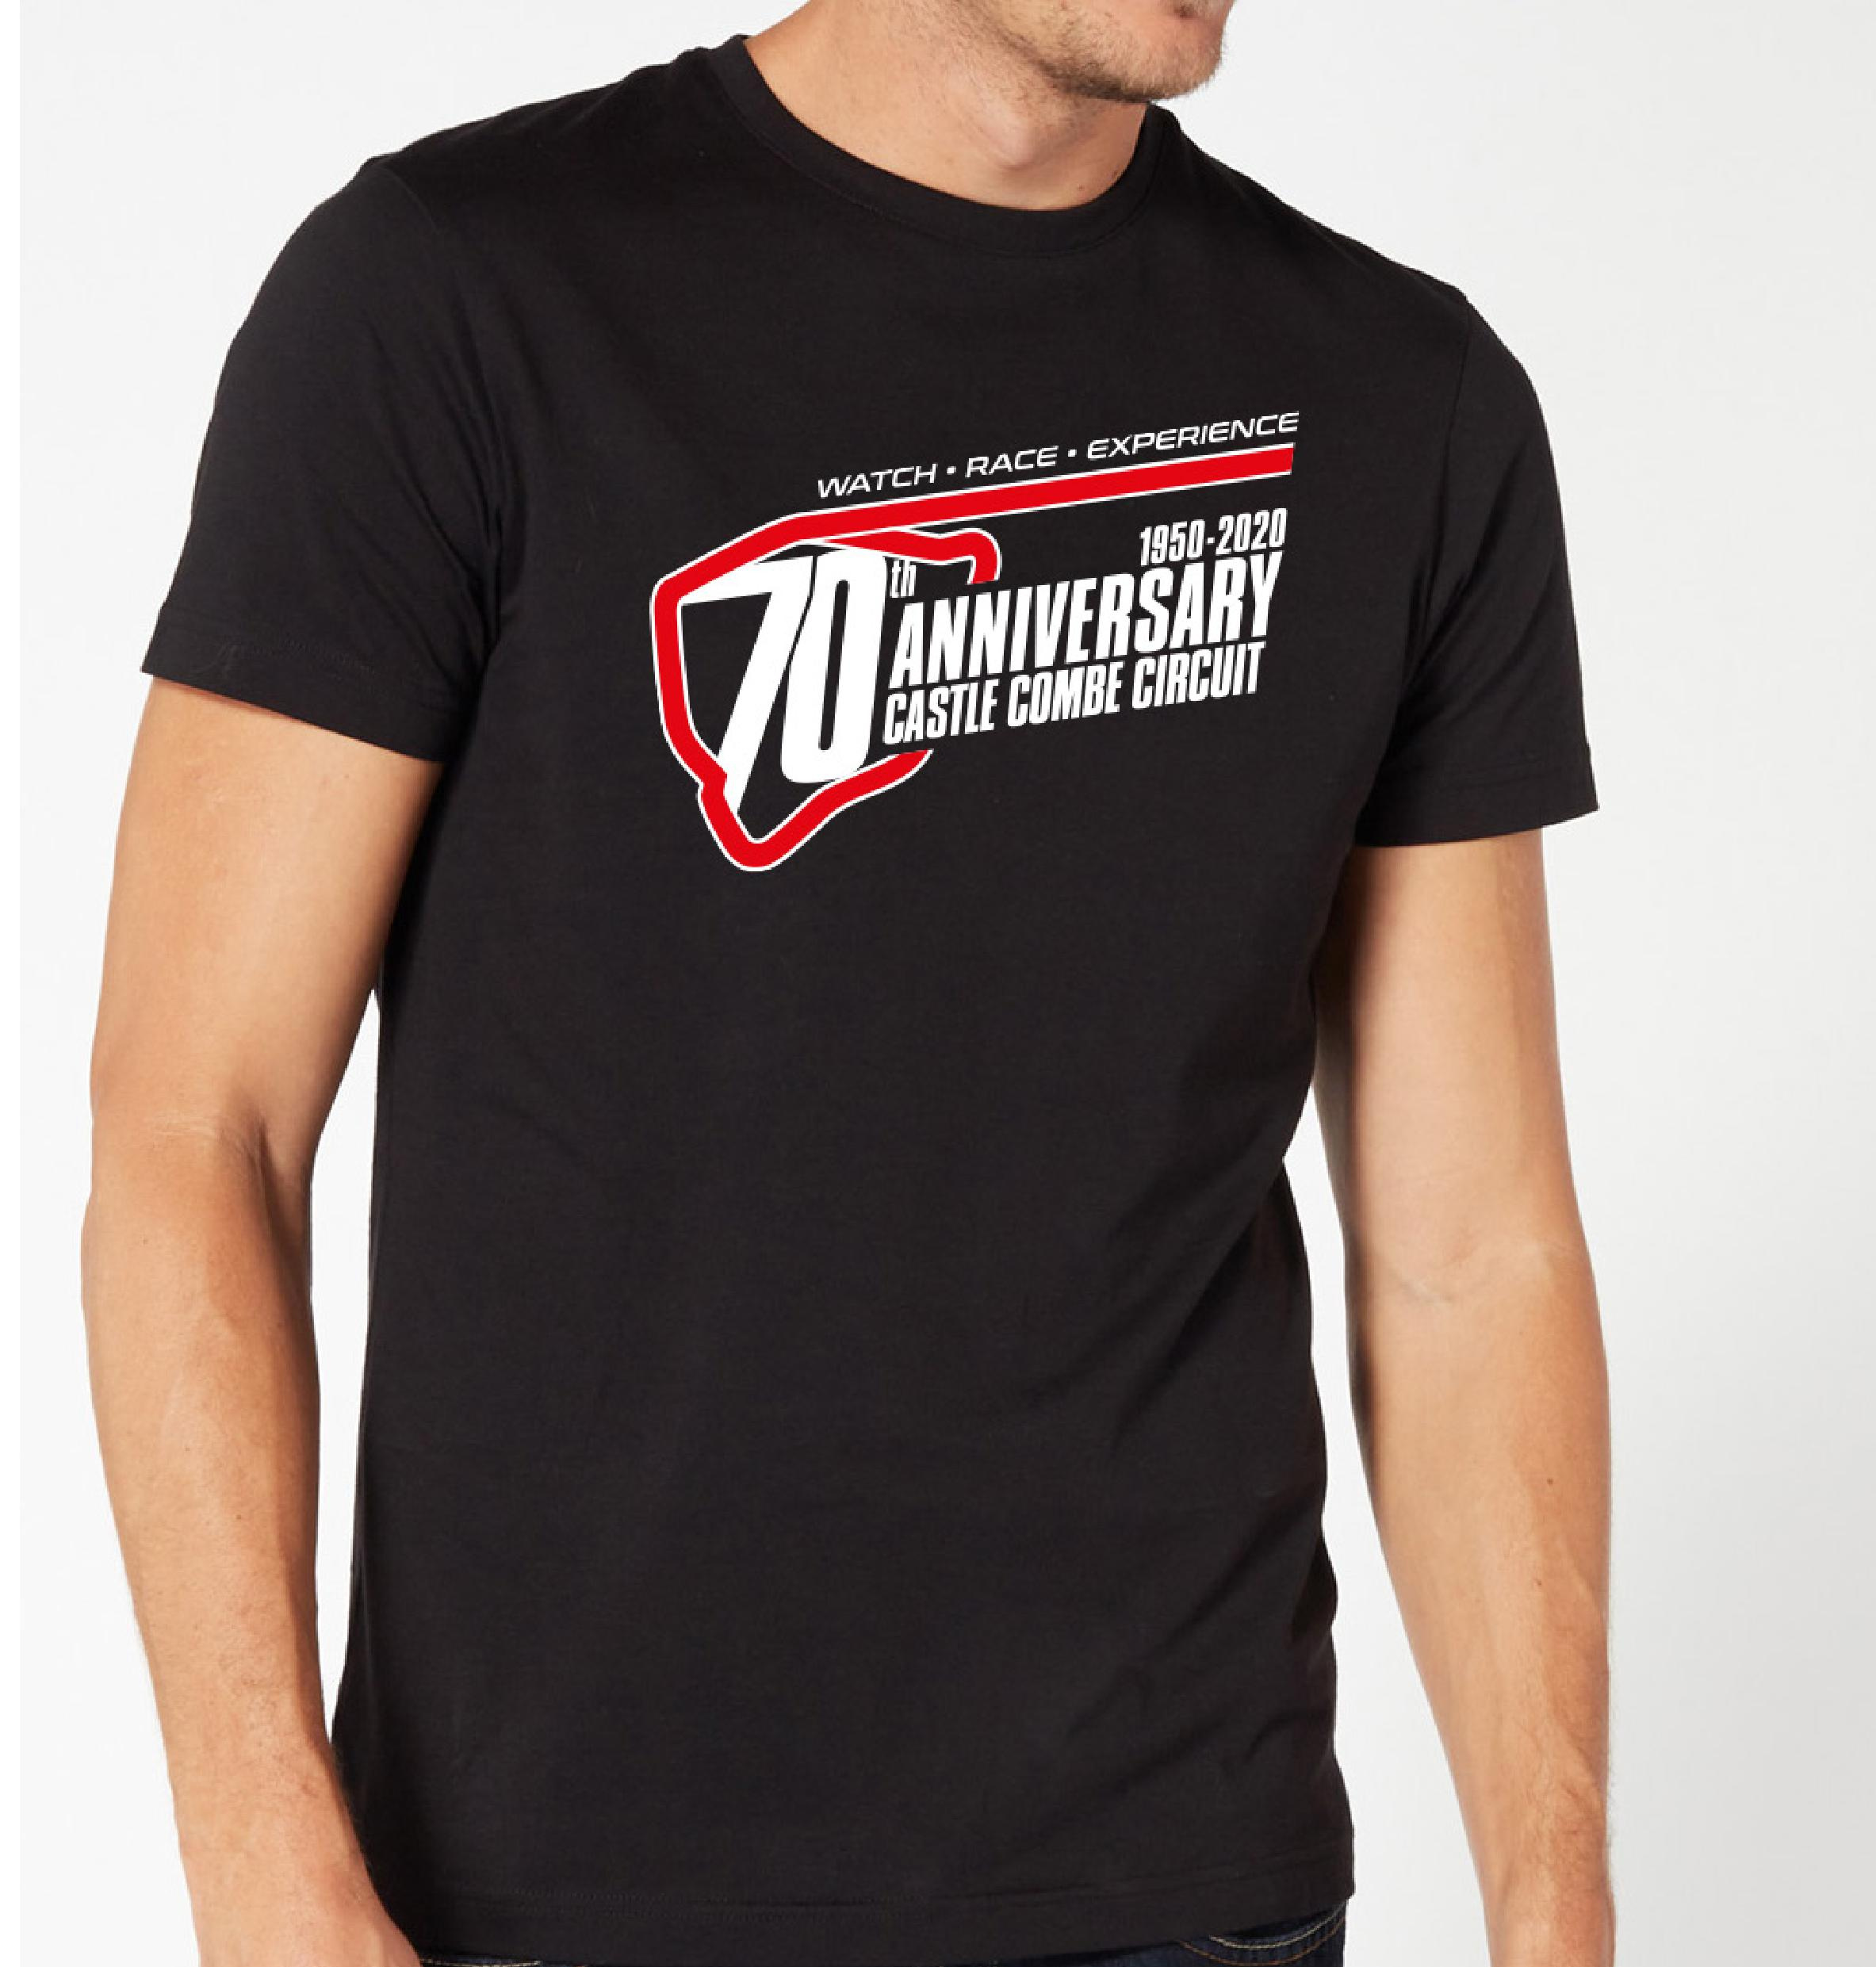 The 70th anniversary t-shirt